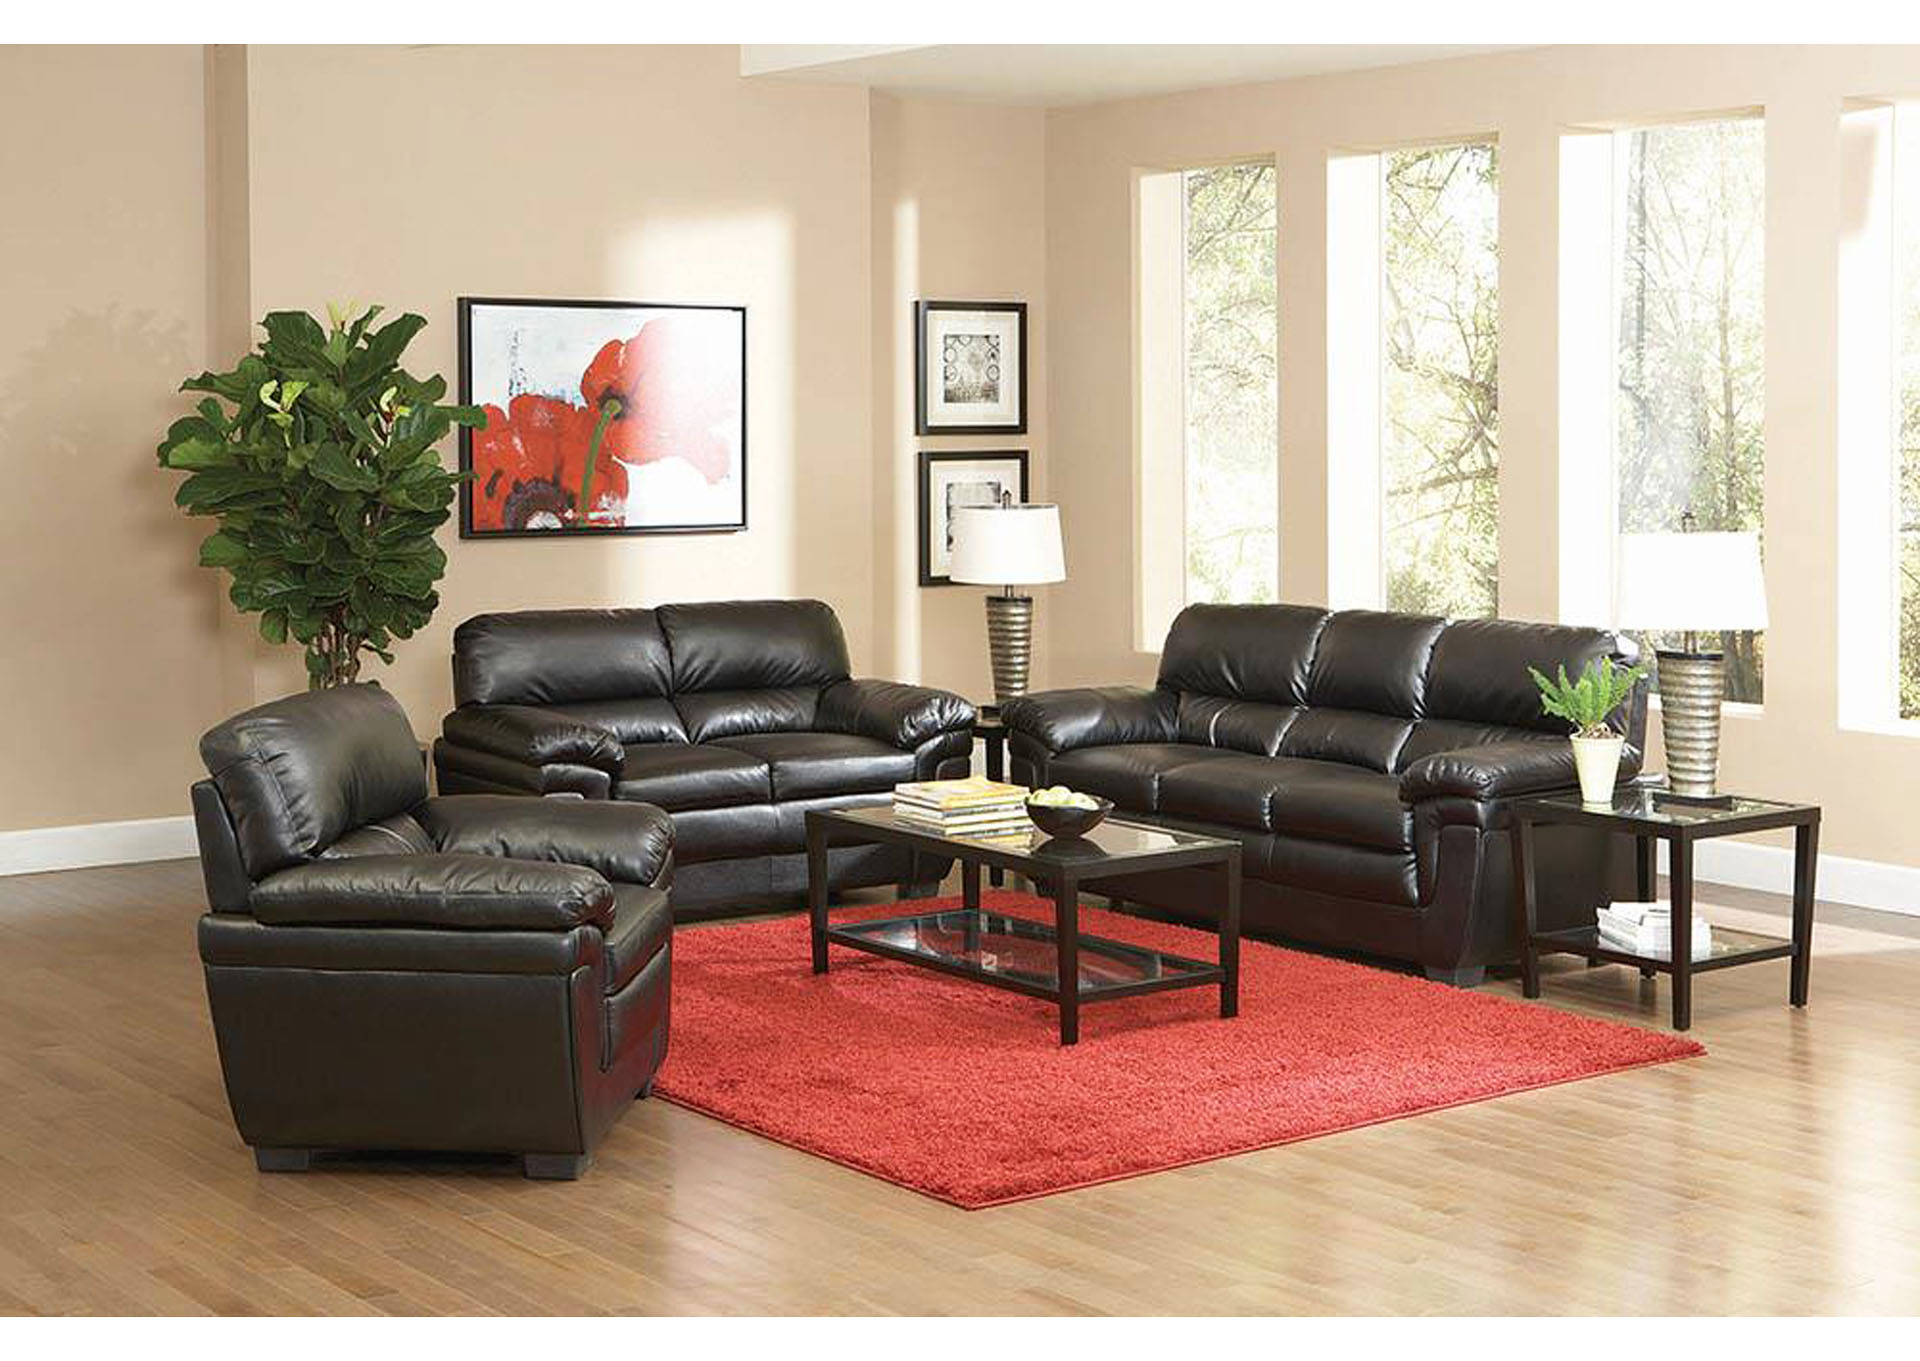 Fenmore Black Love Seat,ABF Coaster Furniture